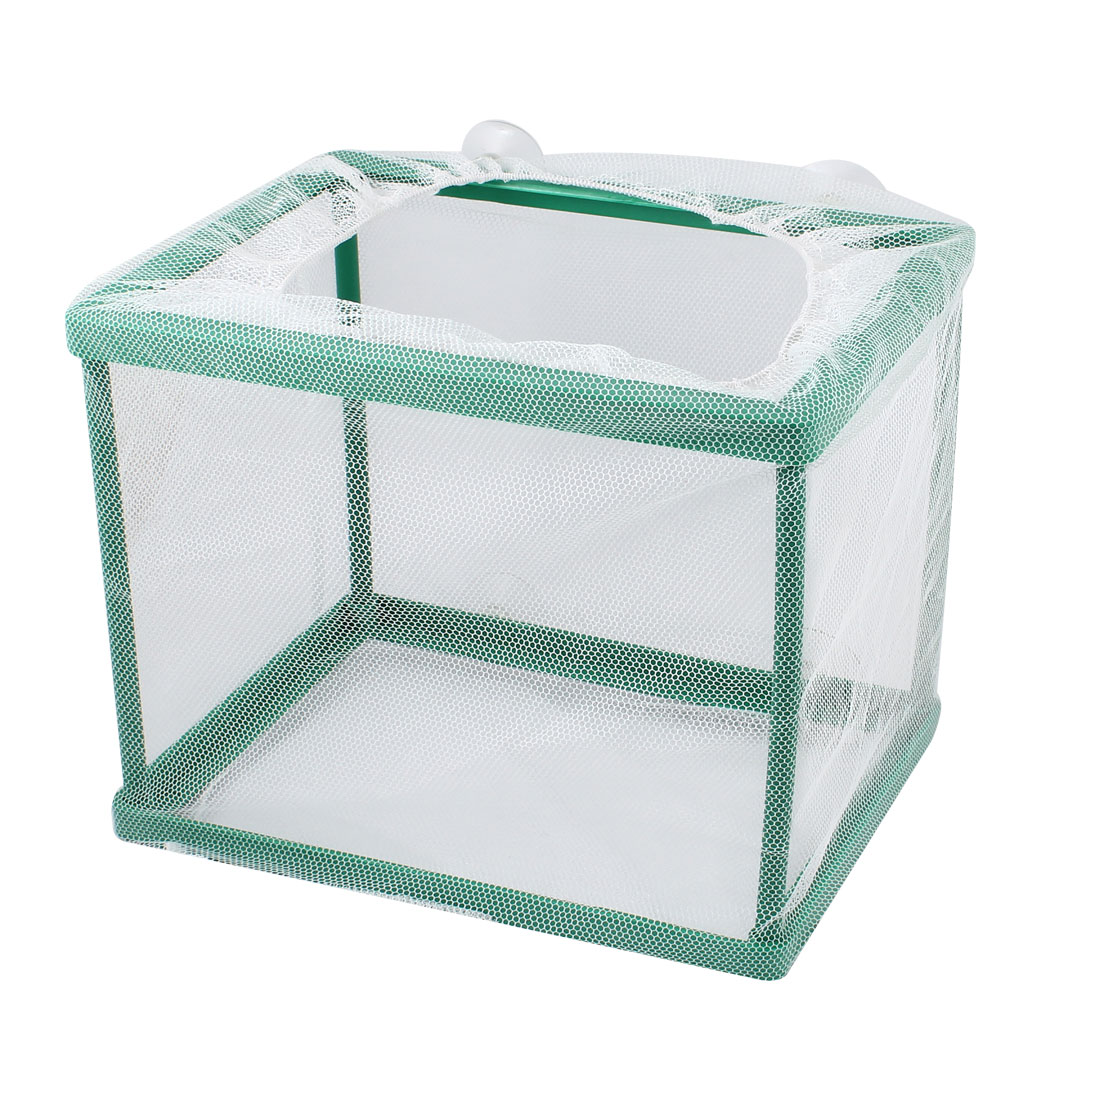 Aquarium Fish Tank Breeding Breeder Fry Newborn Fishes Net Box Hatchery